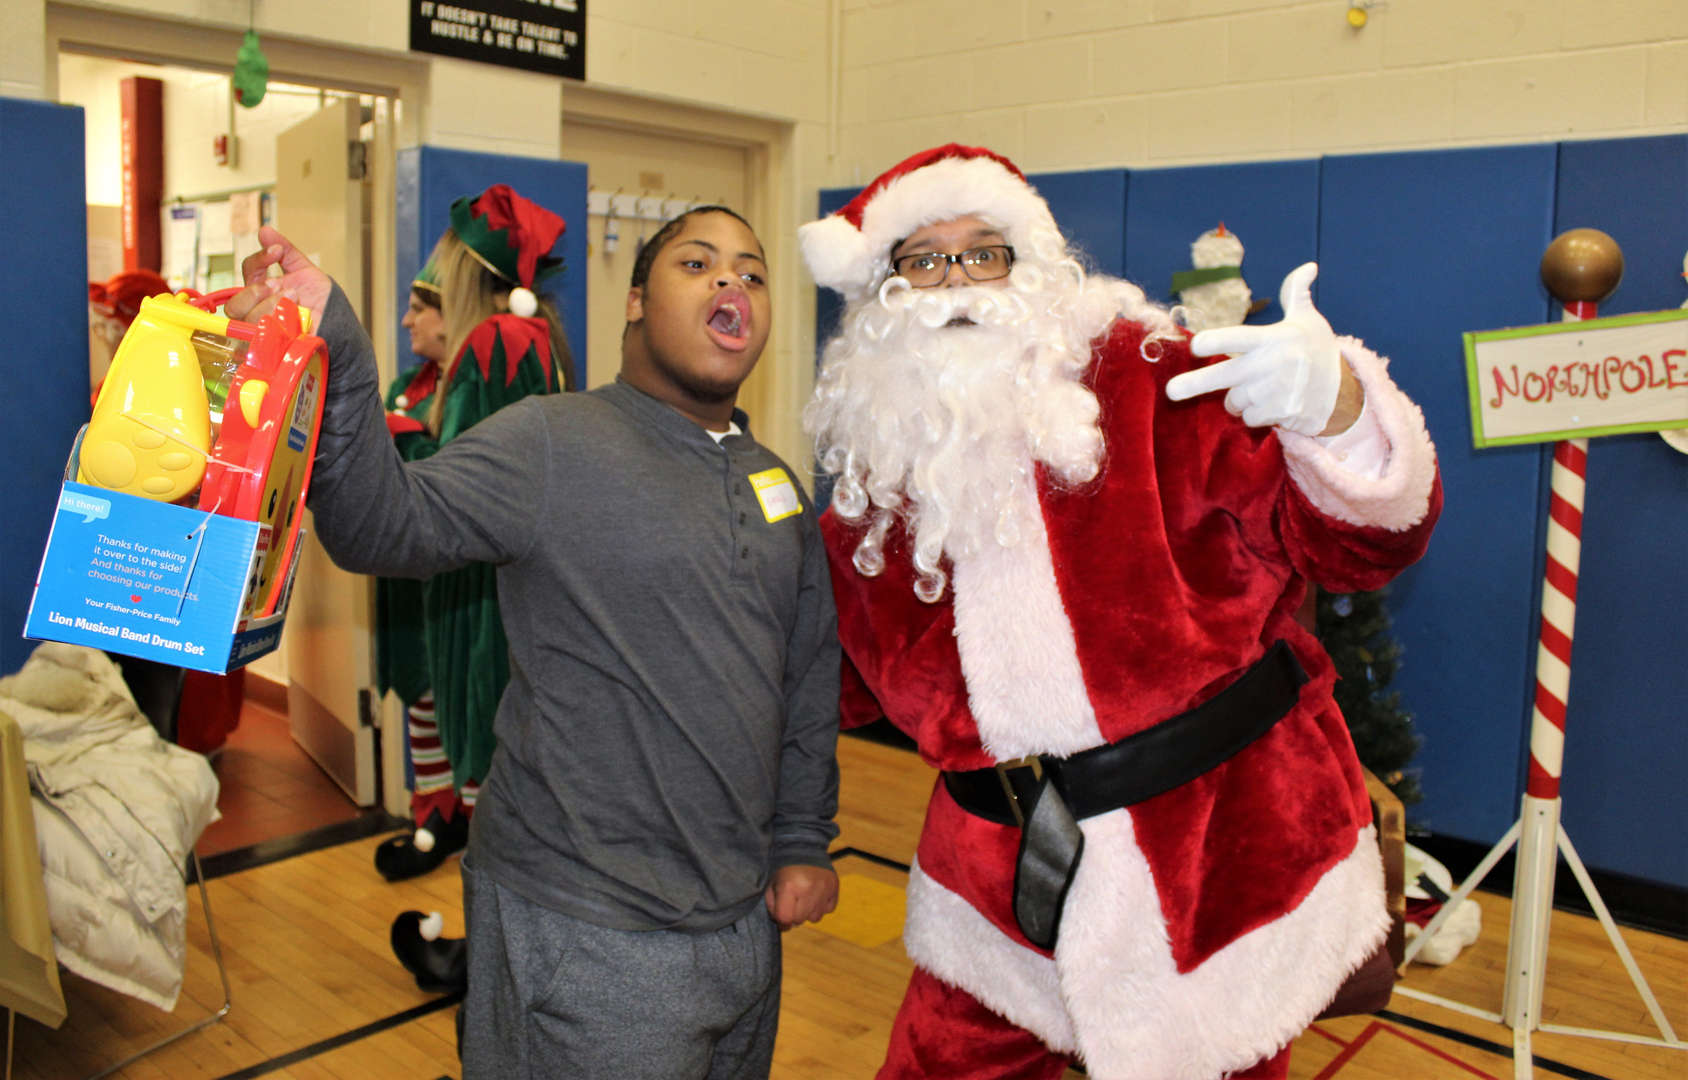 Student poses with Santa at a holiday party.